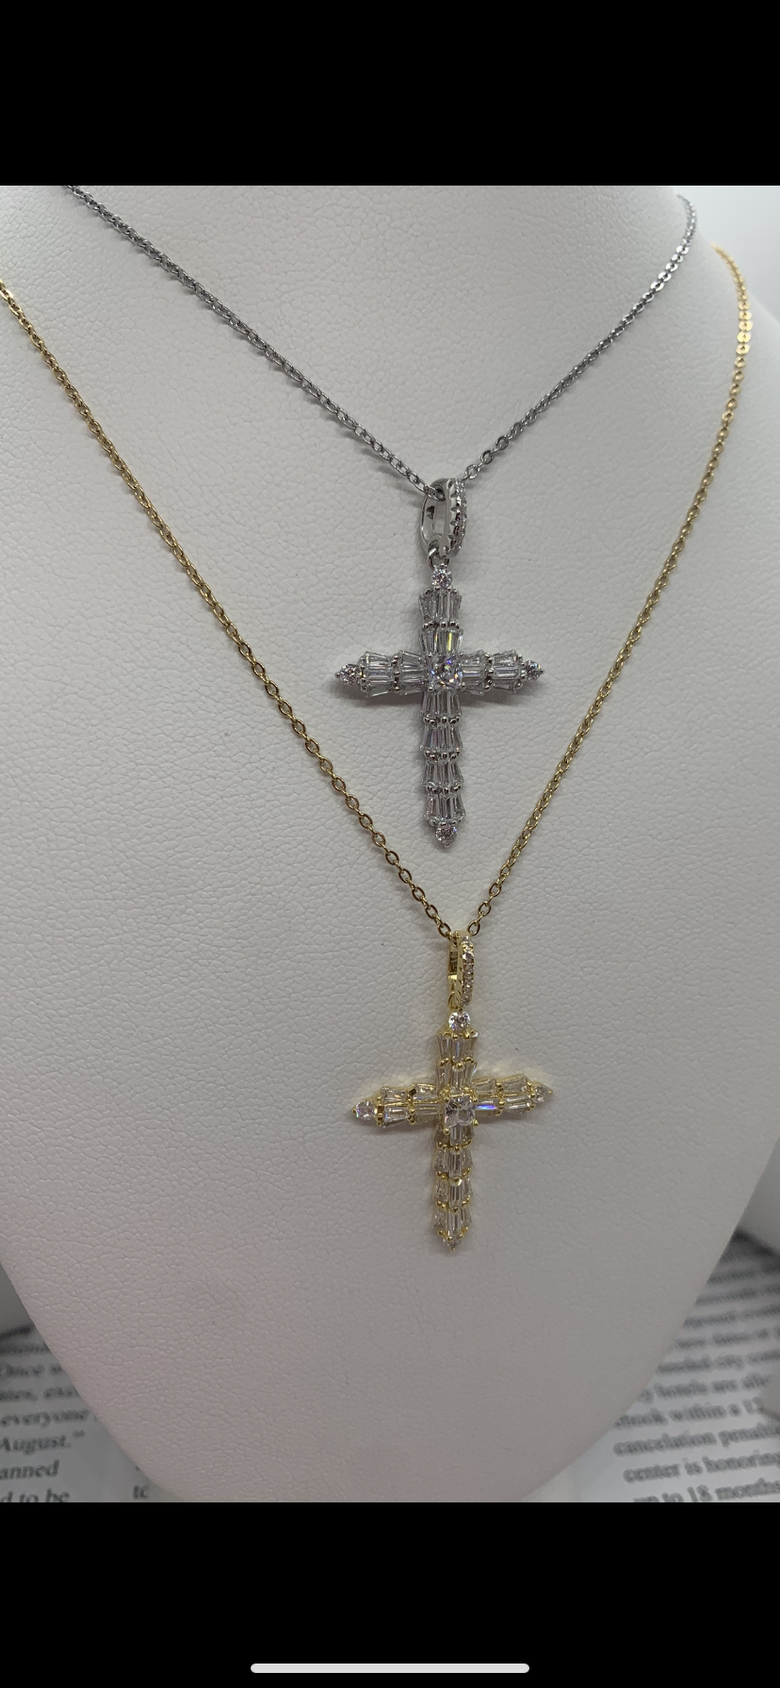 Image of Savior Baguettes necklace